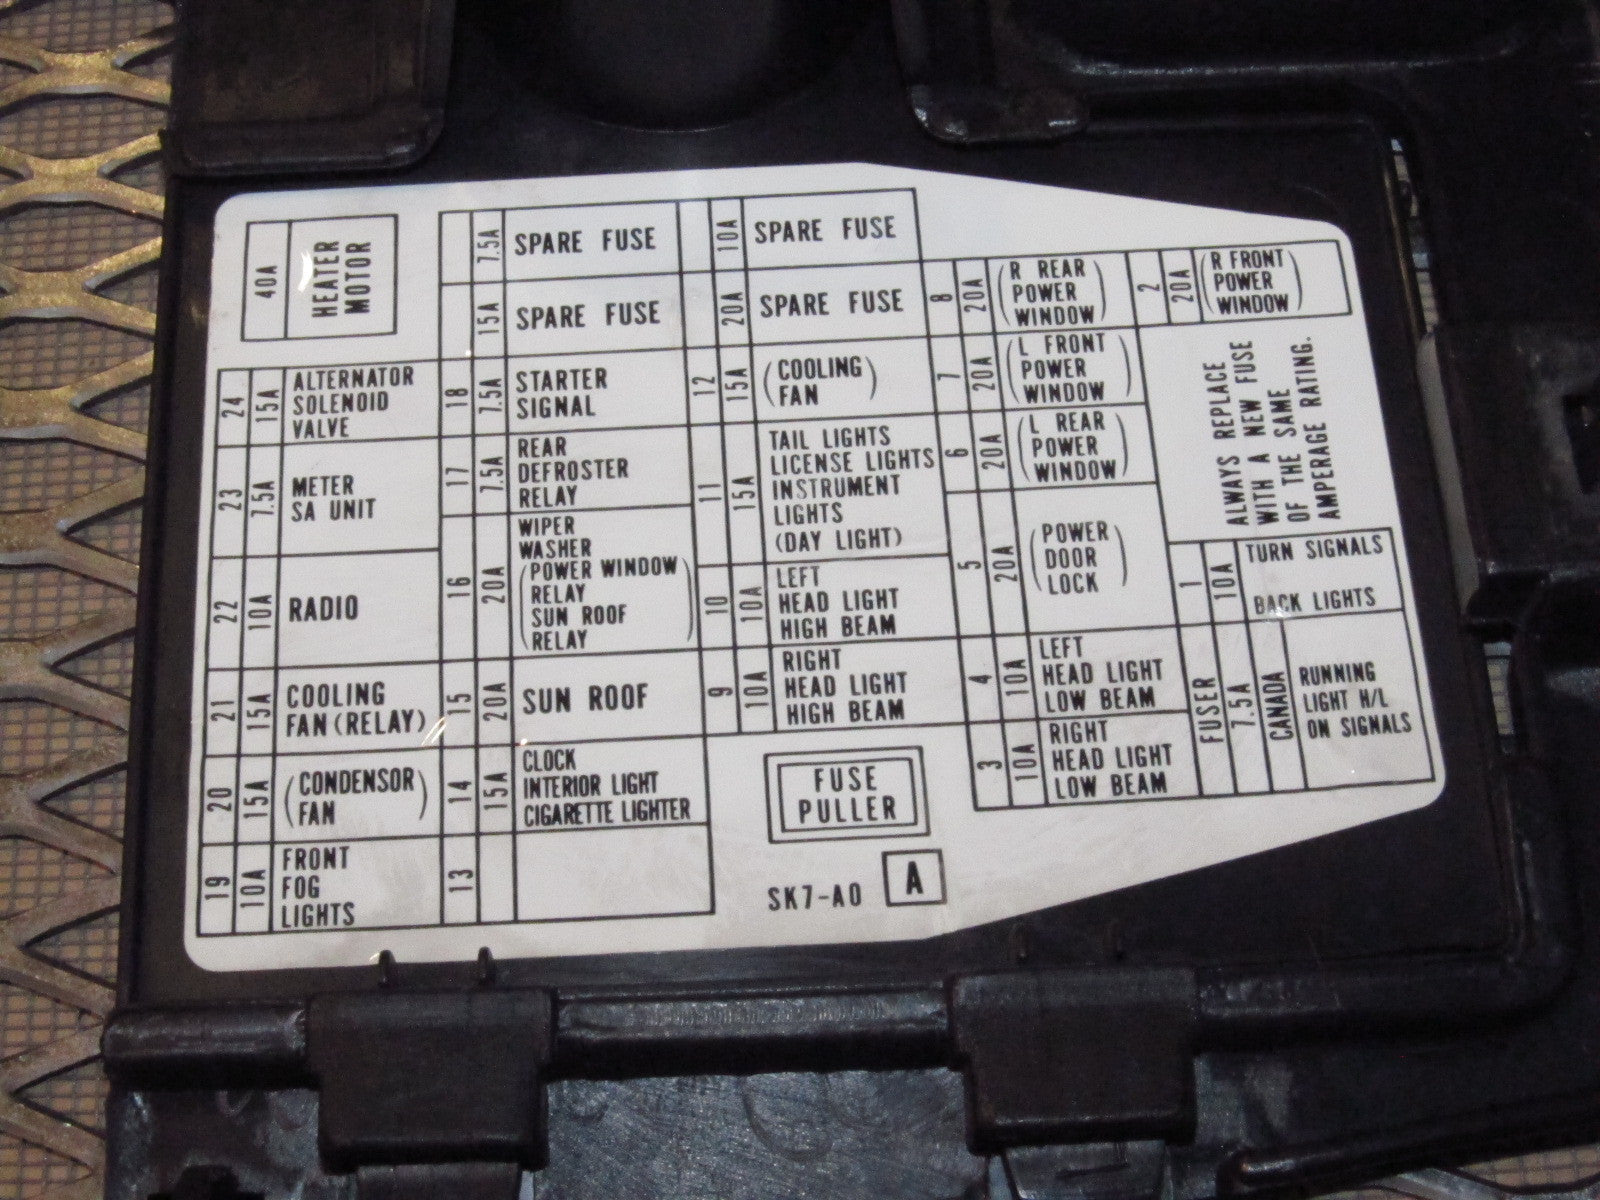 90 300zx Fuse Box Layout Manual Of Wiring Diagram 1991 Nissan 93 Integra About Rh Medijagmbbs Com